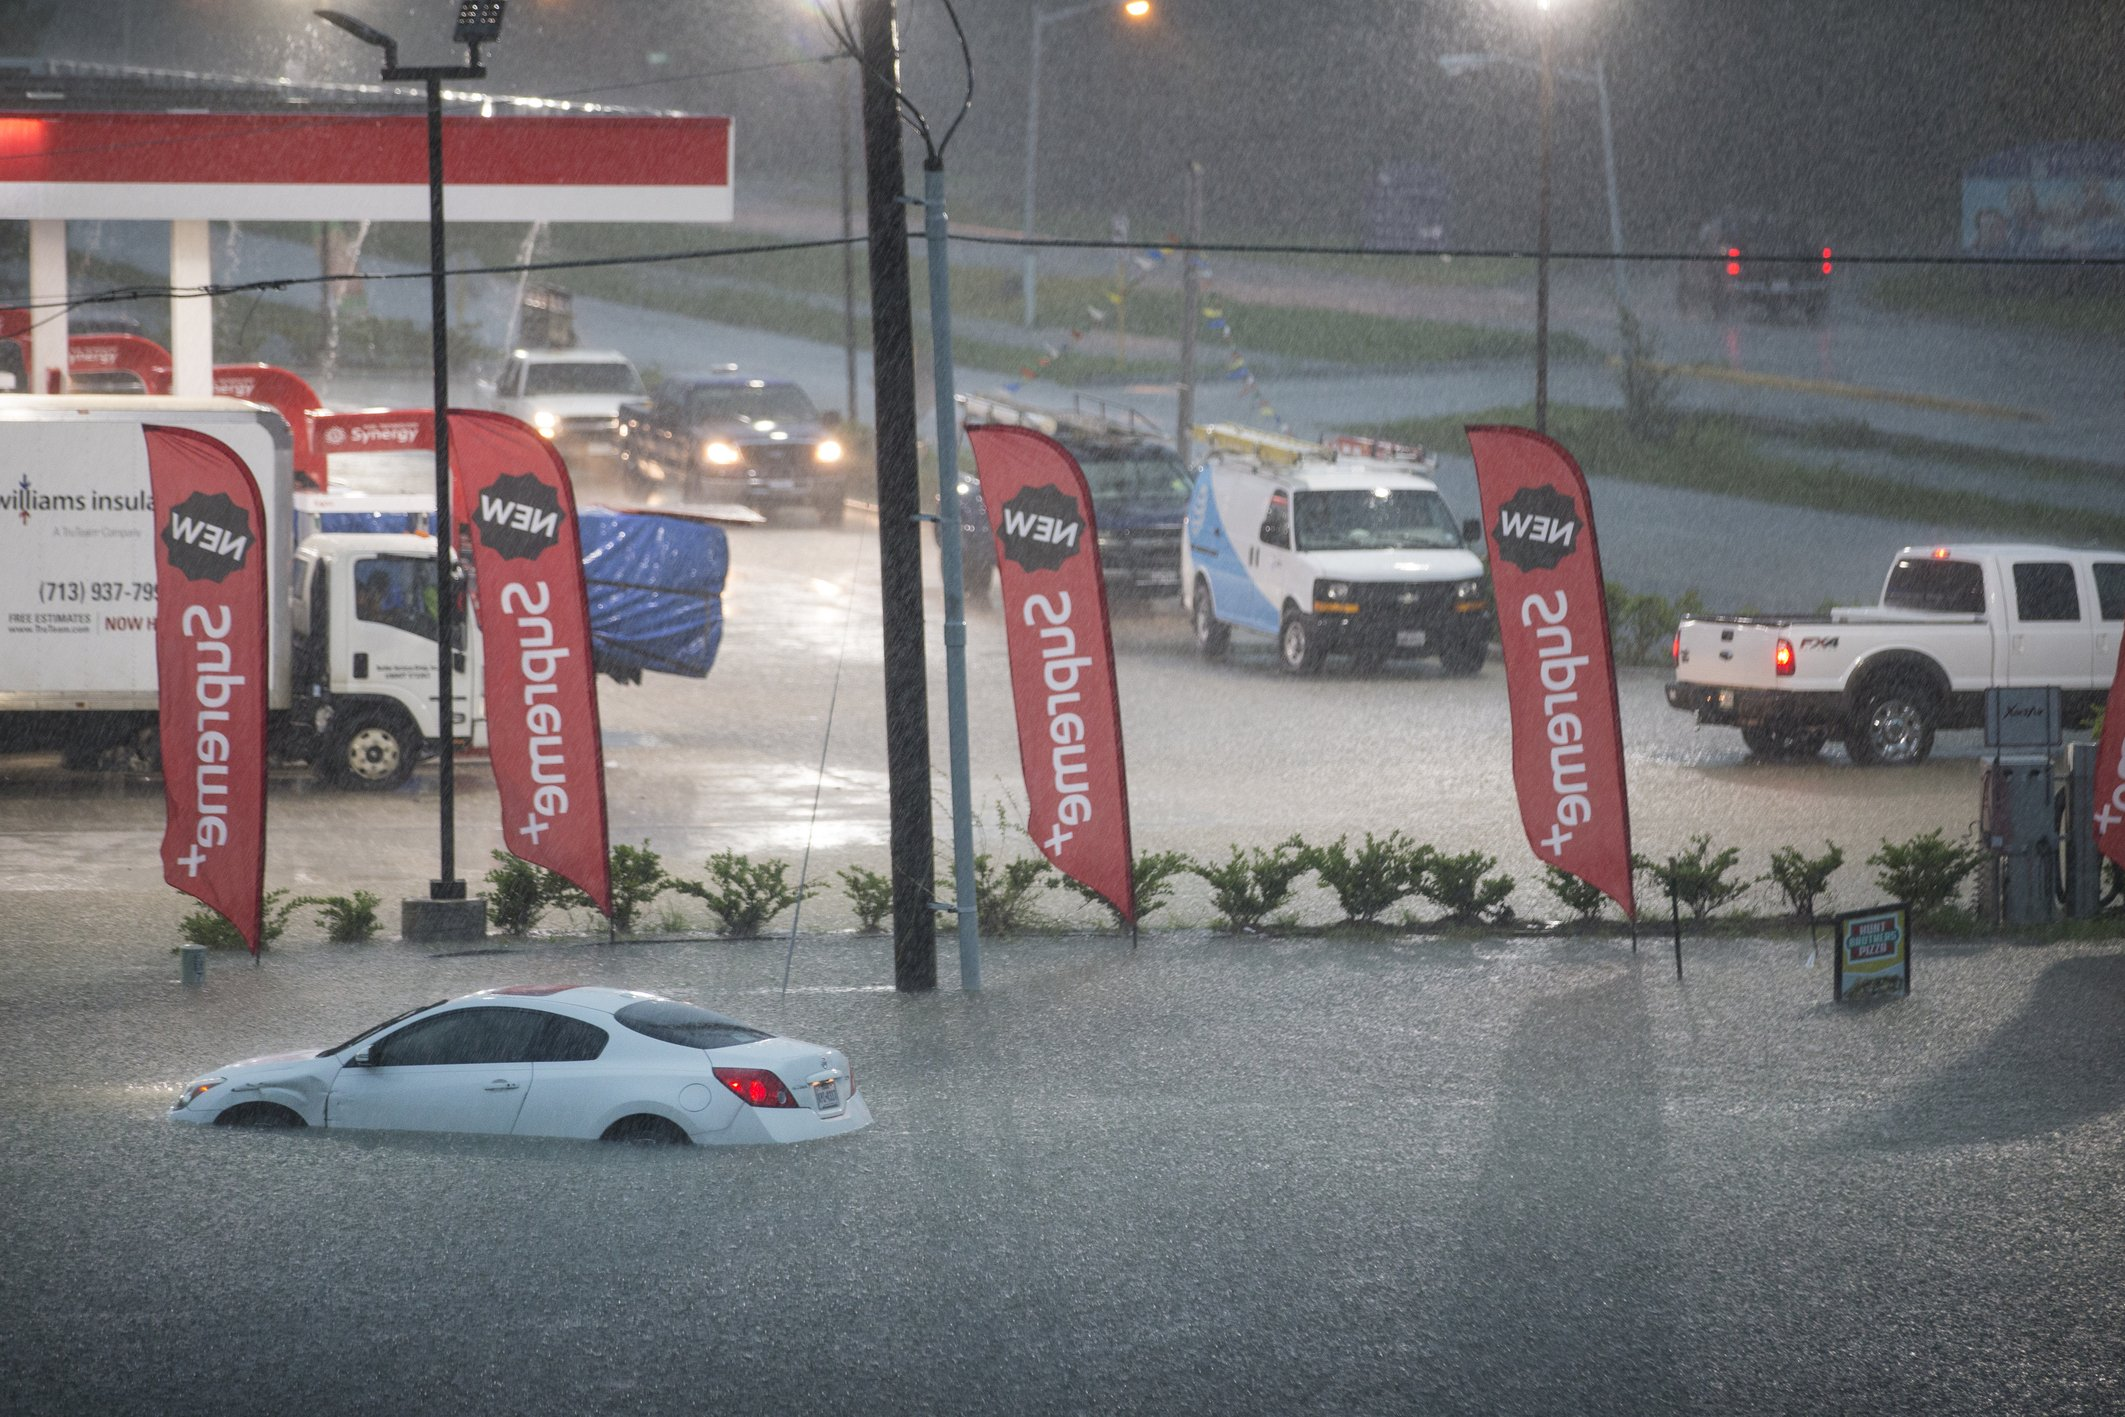 The Latest: More than 1,000 rescues, evacuations in floods